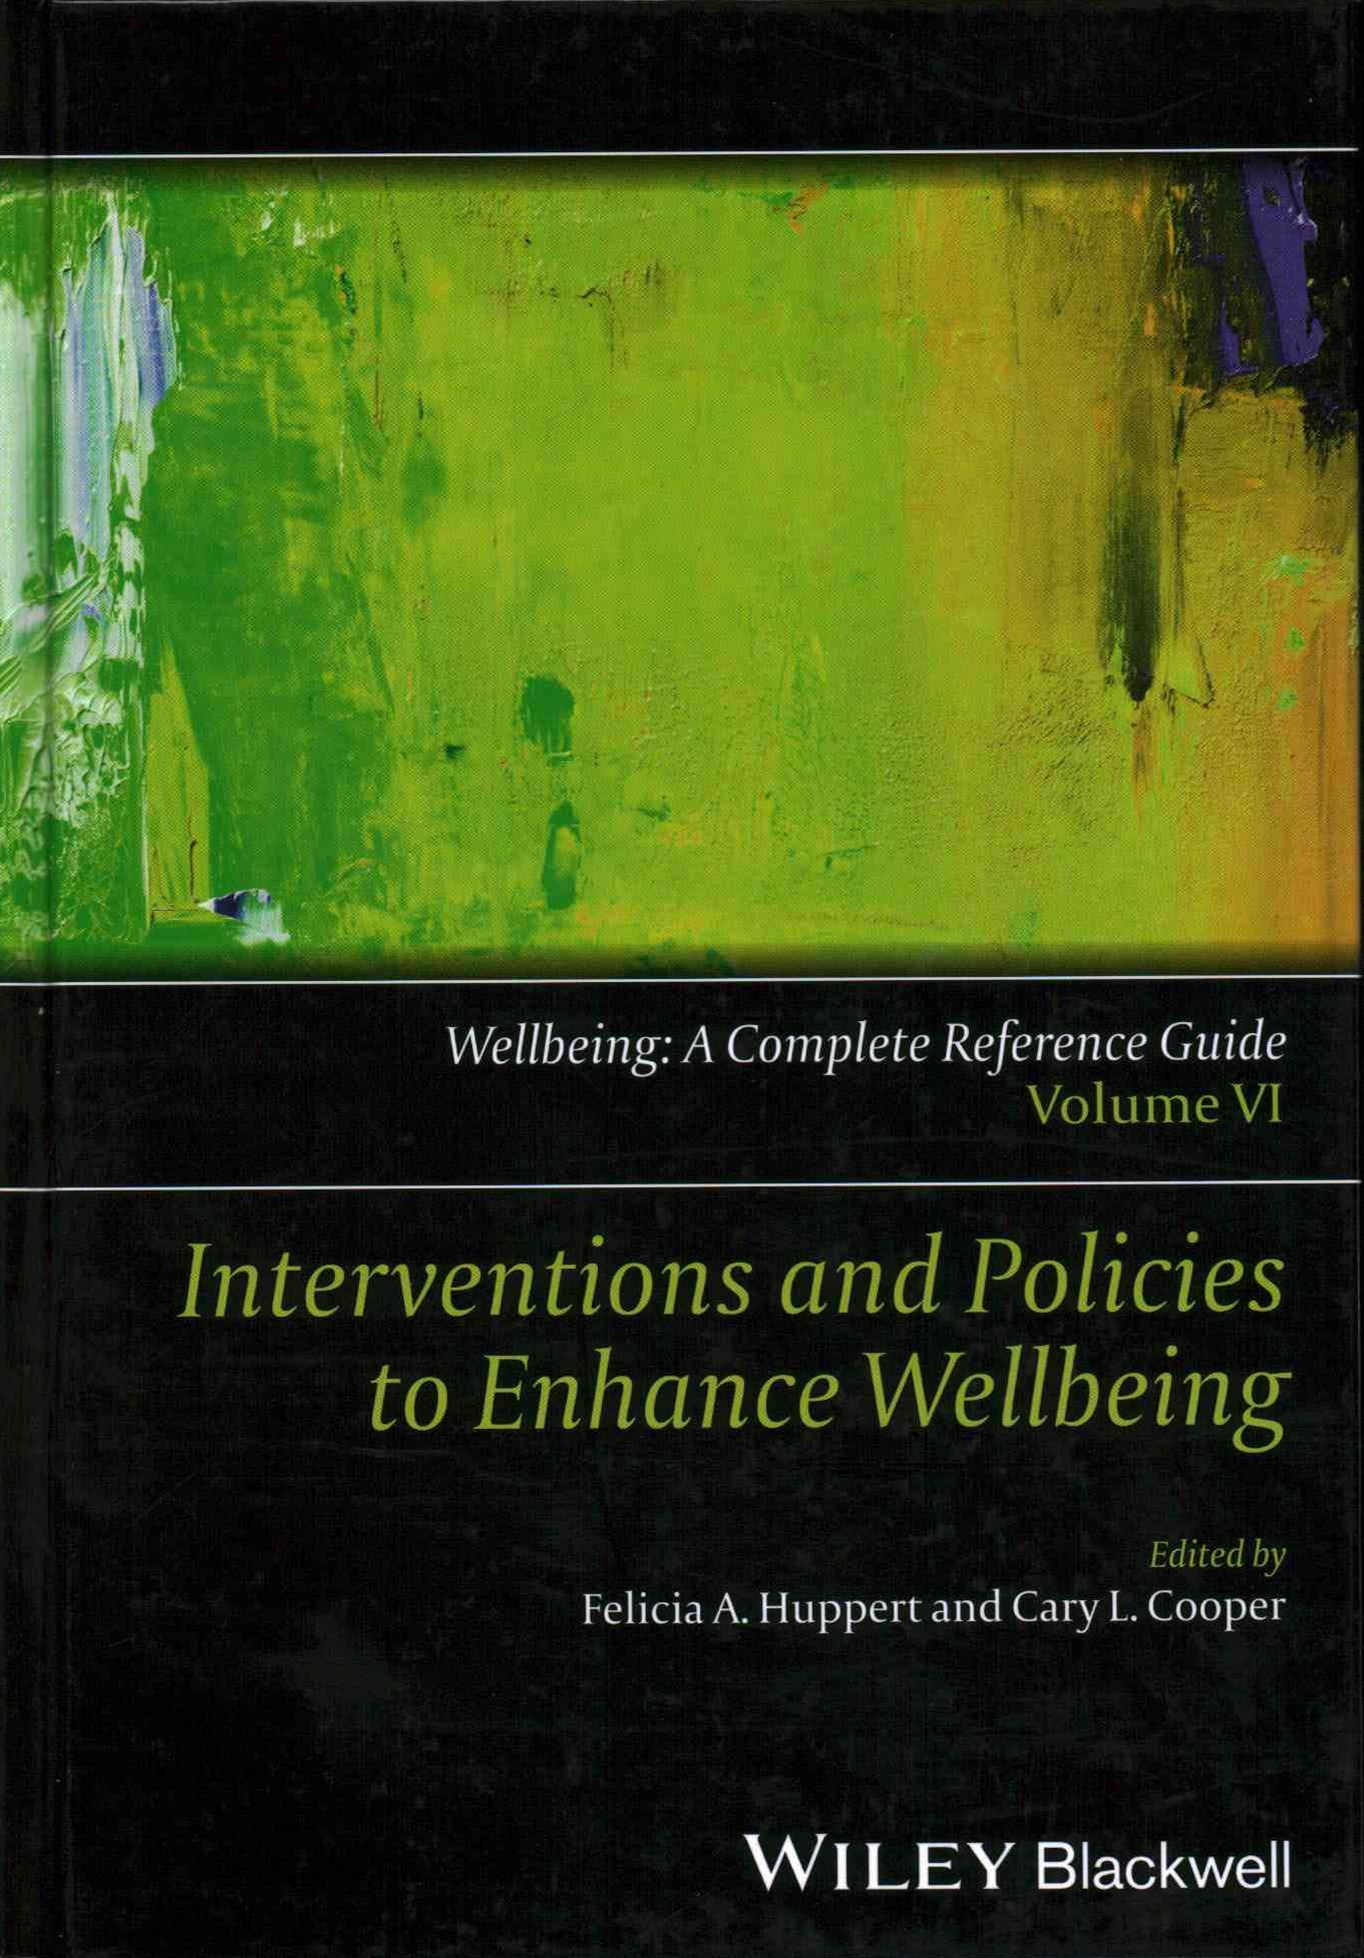 Interventions and Policies to Enhance Wellbeing - Wellbeing - a Complete Reference Guide, Vol 6